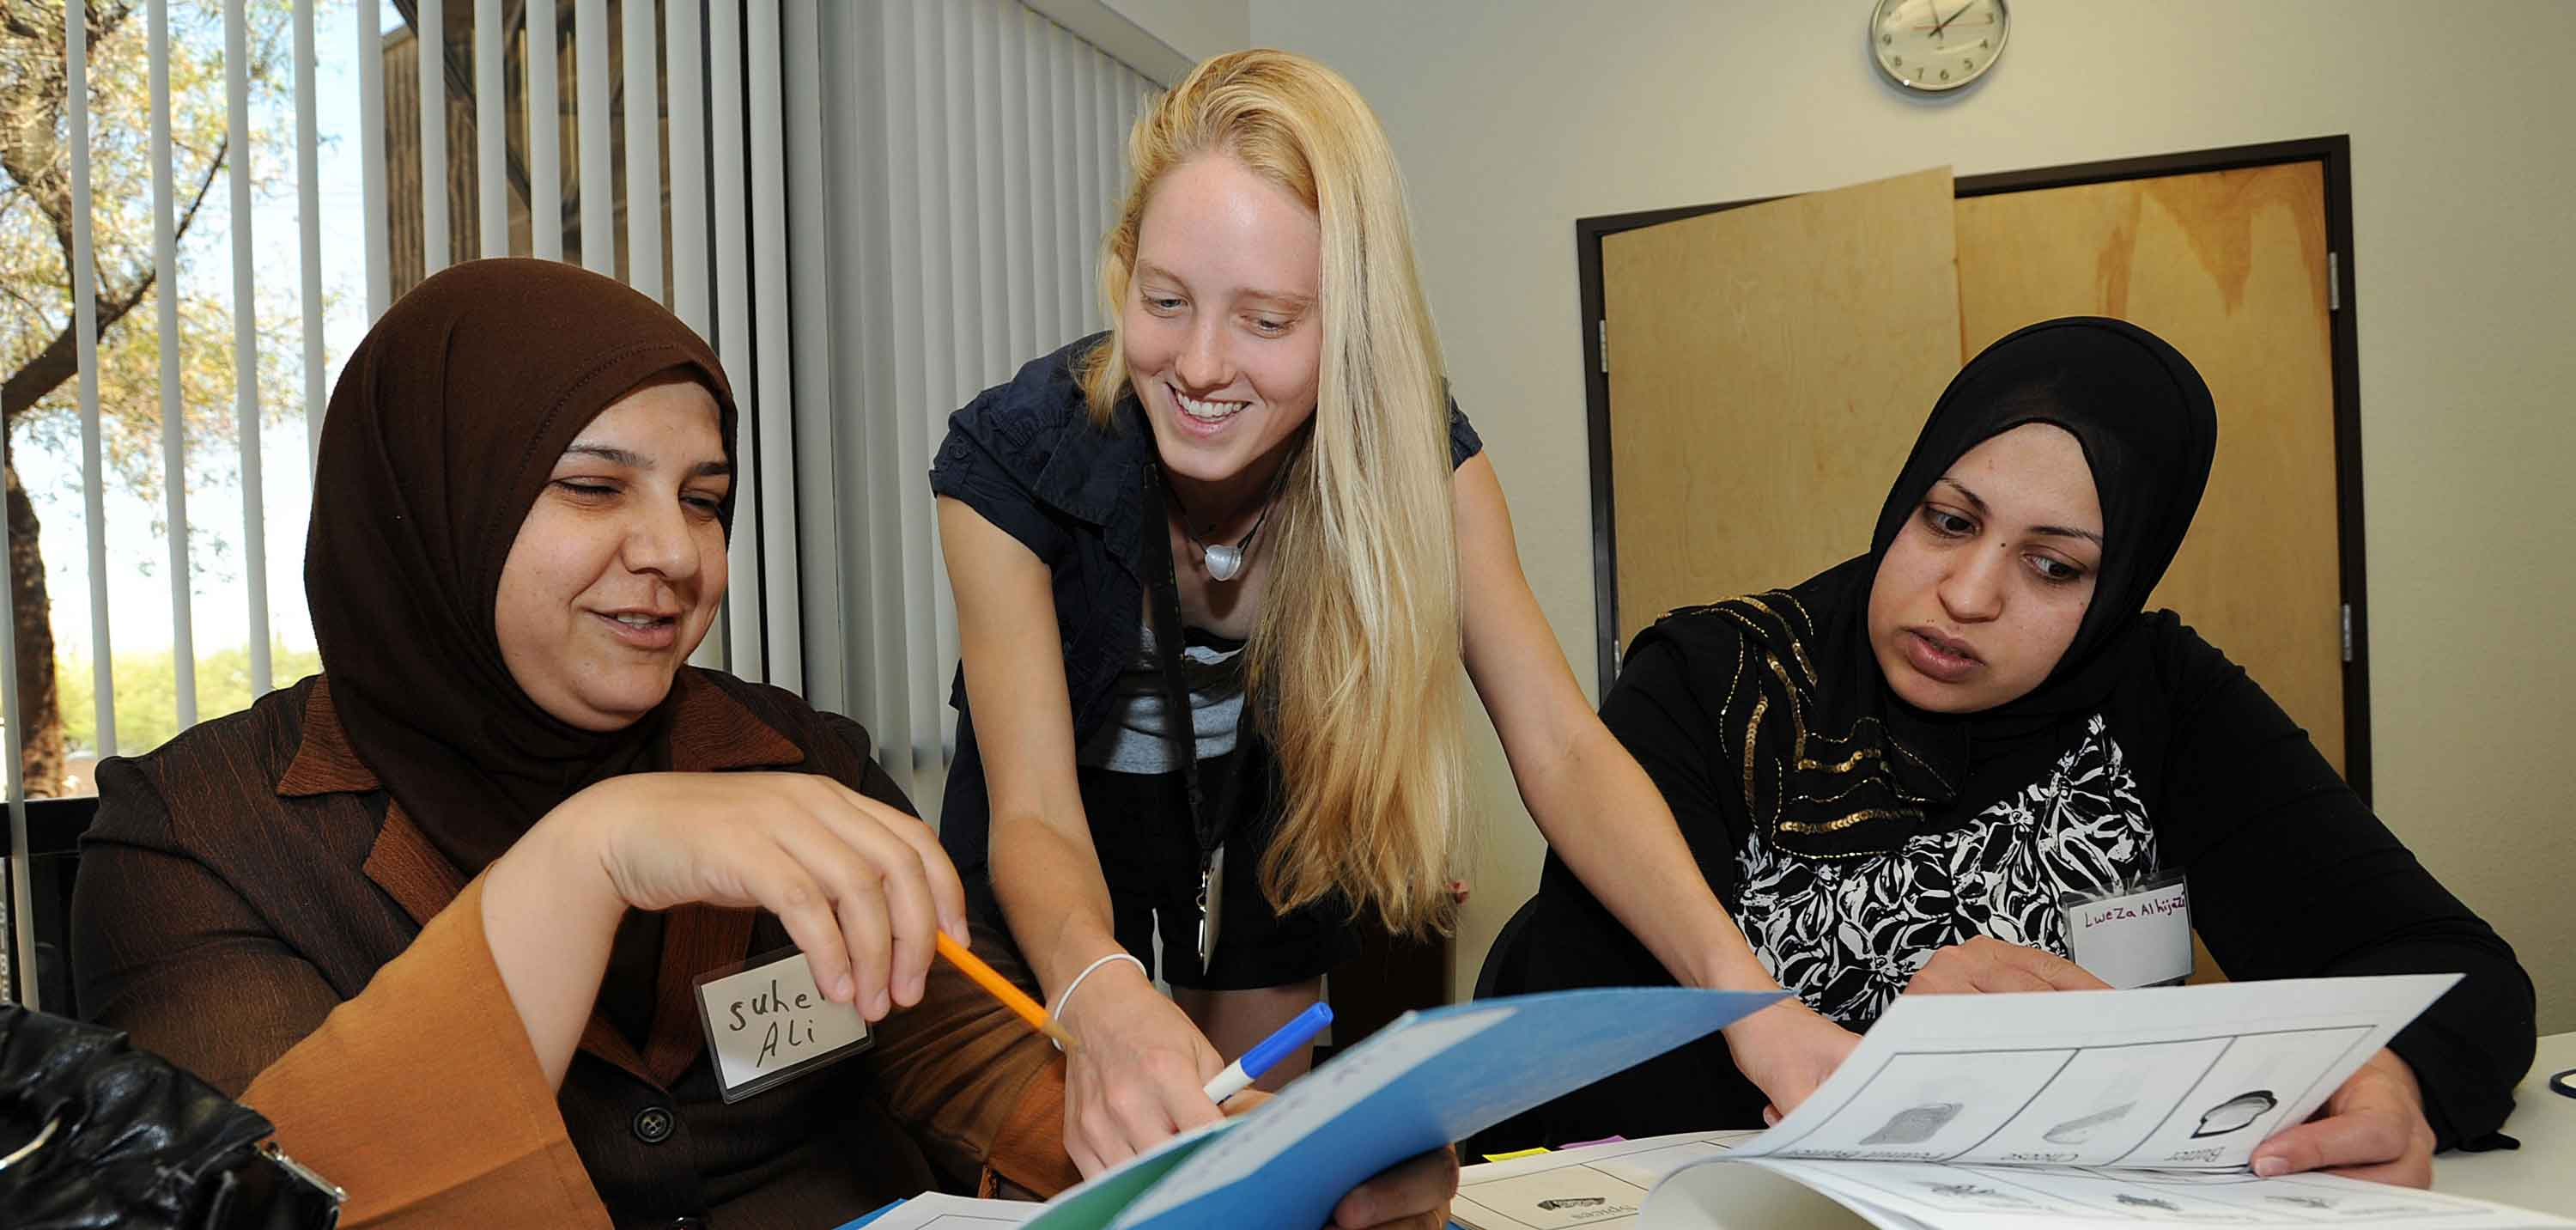 A cultural orientation trainer teaching recently resettled refugees about U.S. culture